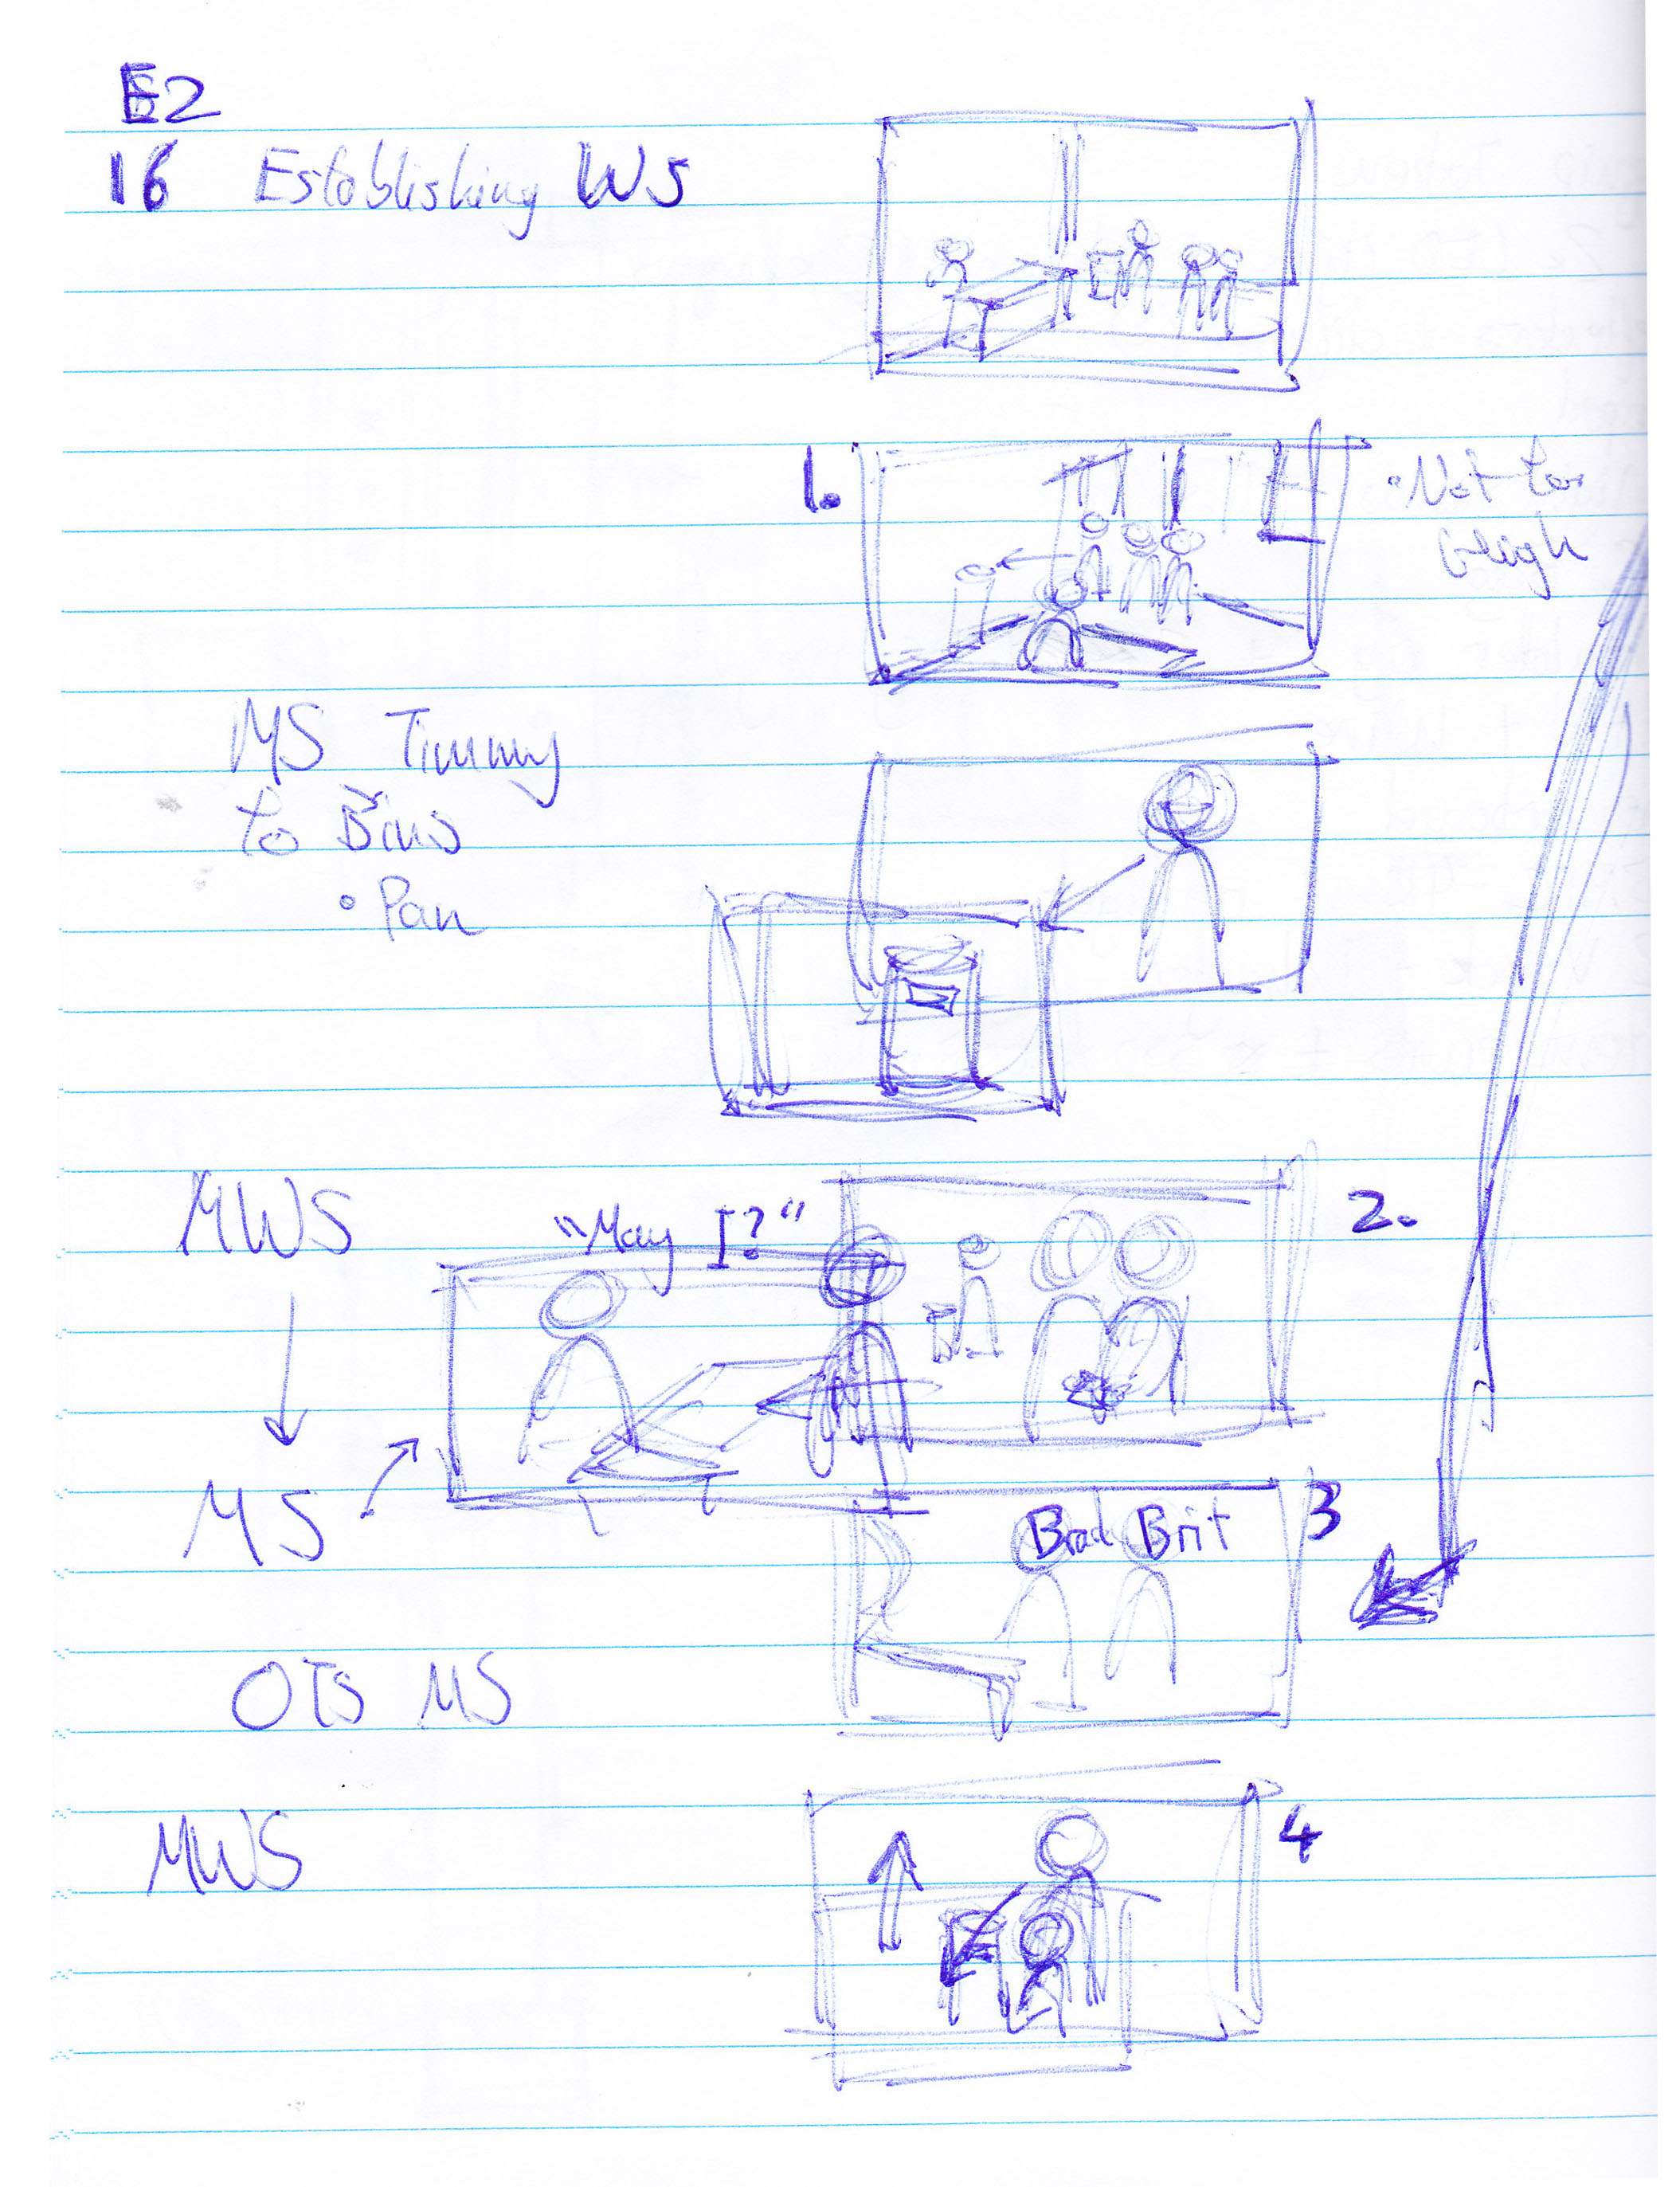 Storyboard for one scene in E2